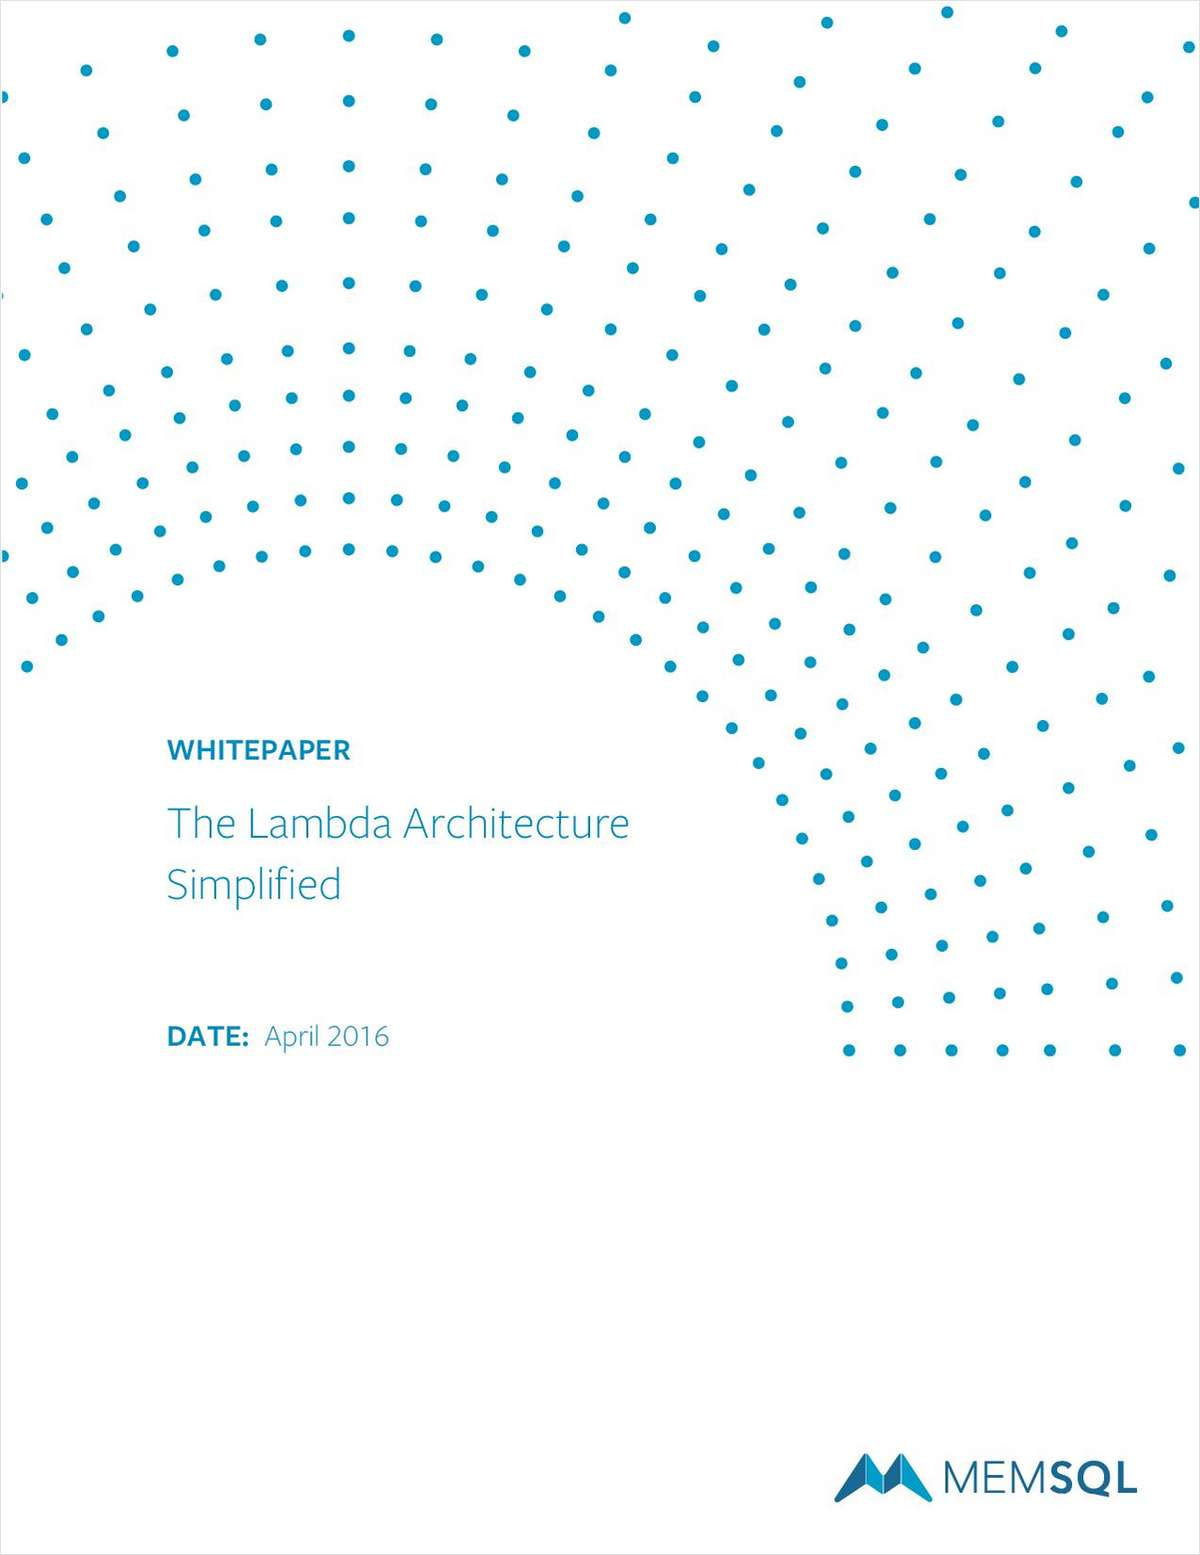 The Lambda Architecture Simplified